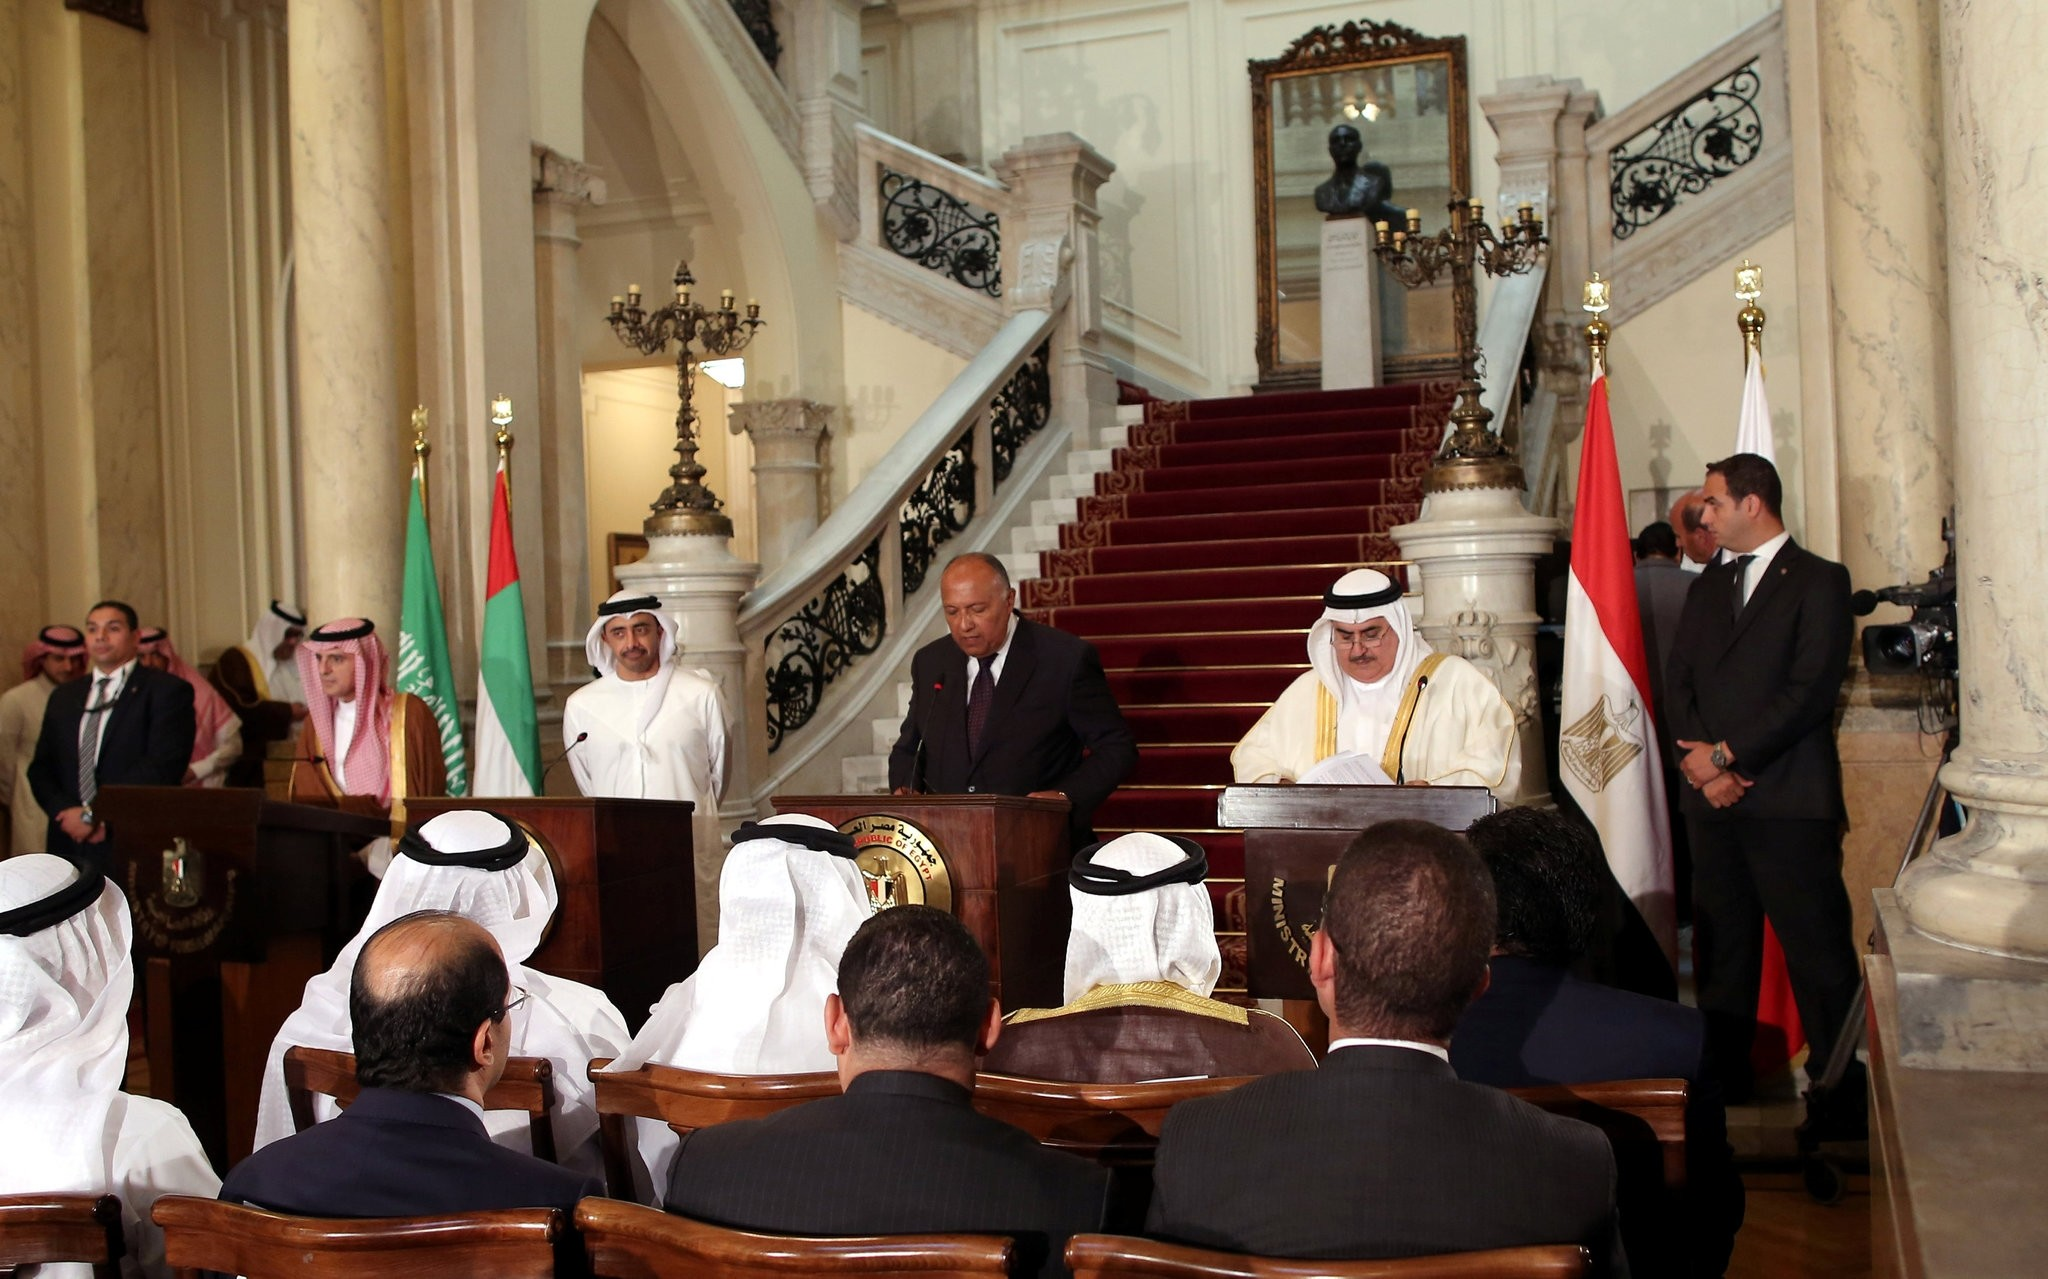 Saudi Foreign Minister Adel al-Jubeir, UAE Foreign Minister Abdullah bin Zayed al-Nahyan, Egyptian Foreign Minister Sameh Shoukry and Bahraini Foreign Minister Khalid bin Ahmed al-Khalifa attend a press conference. (Reuters Photo)